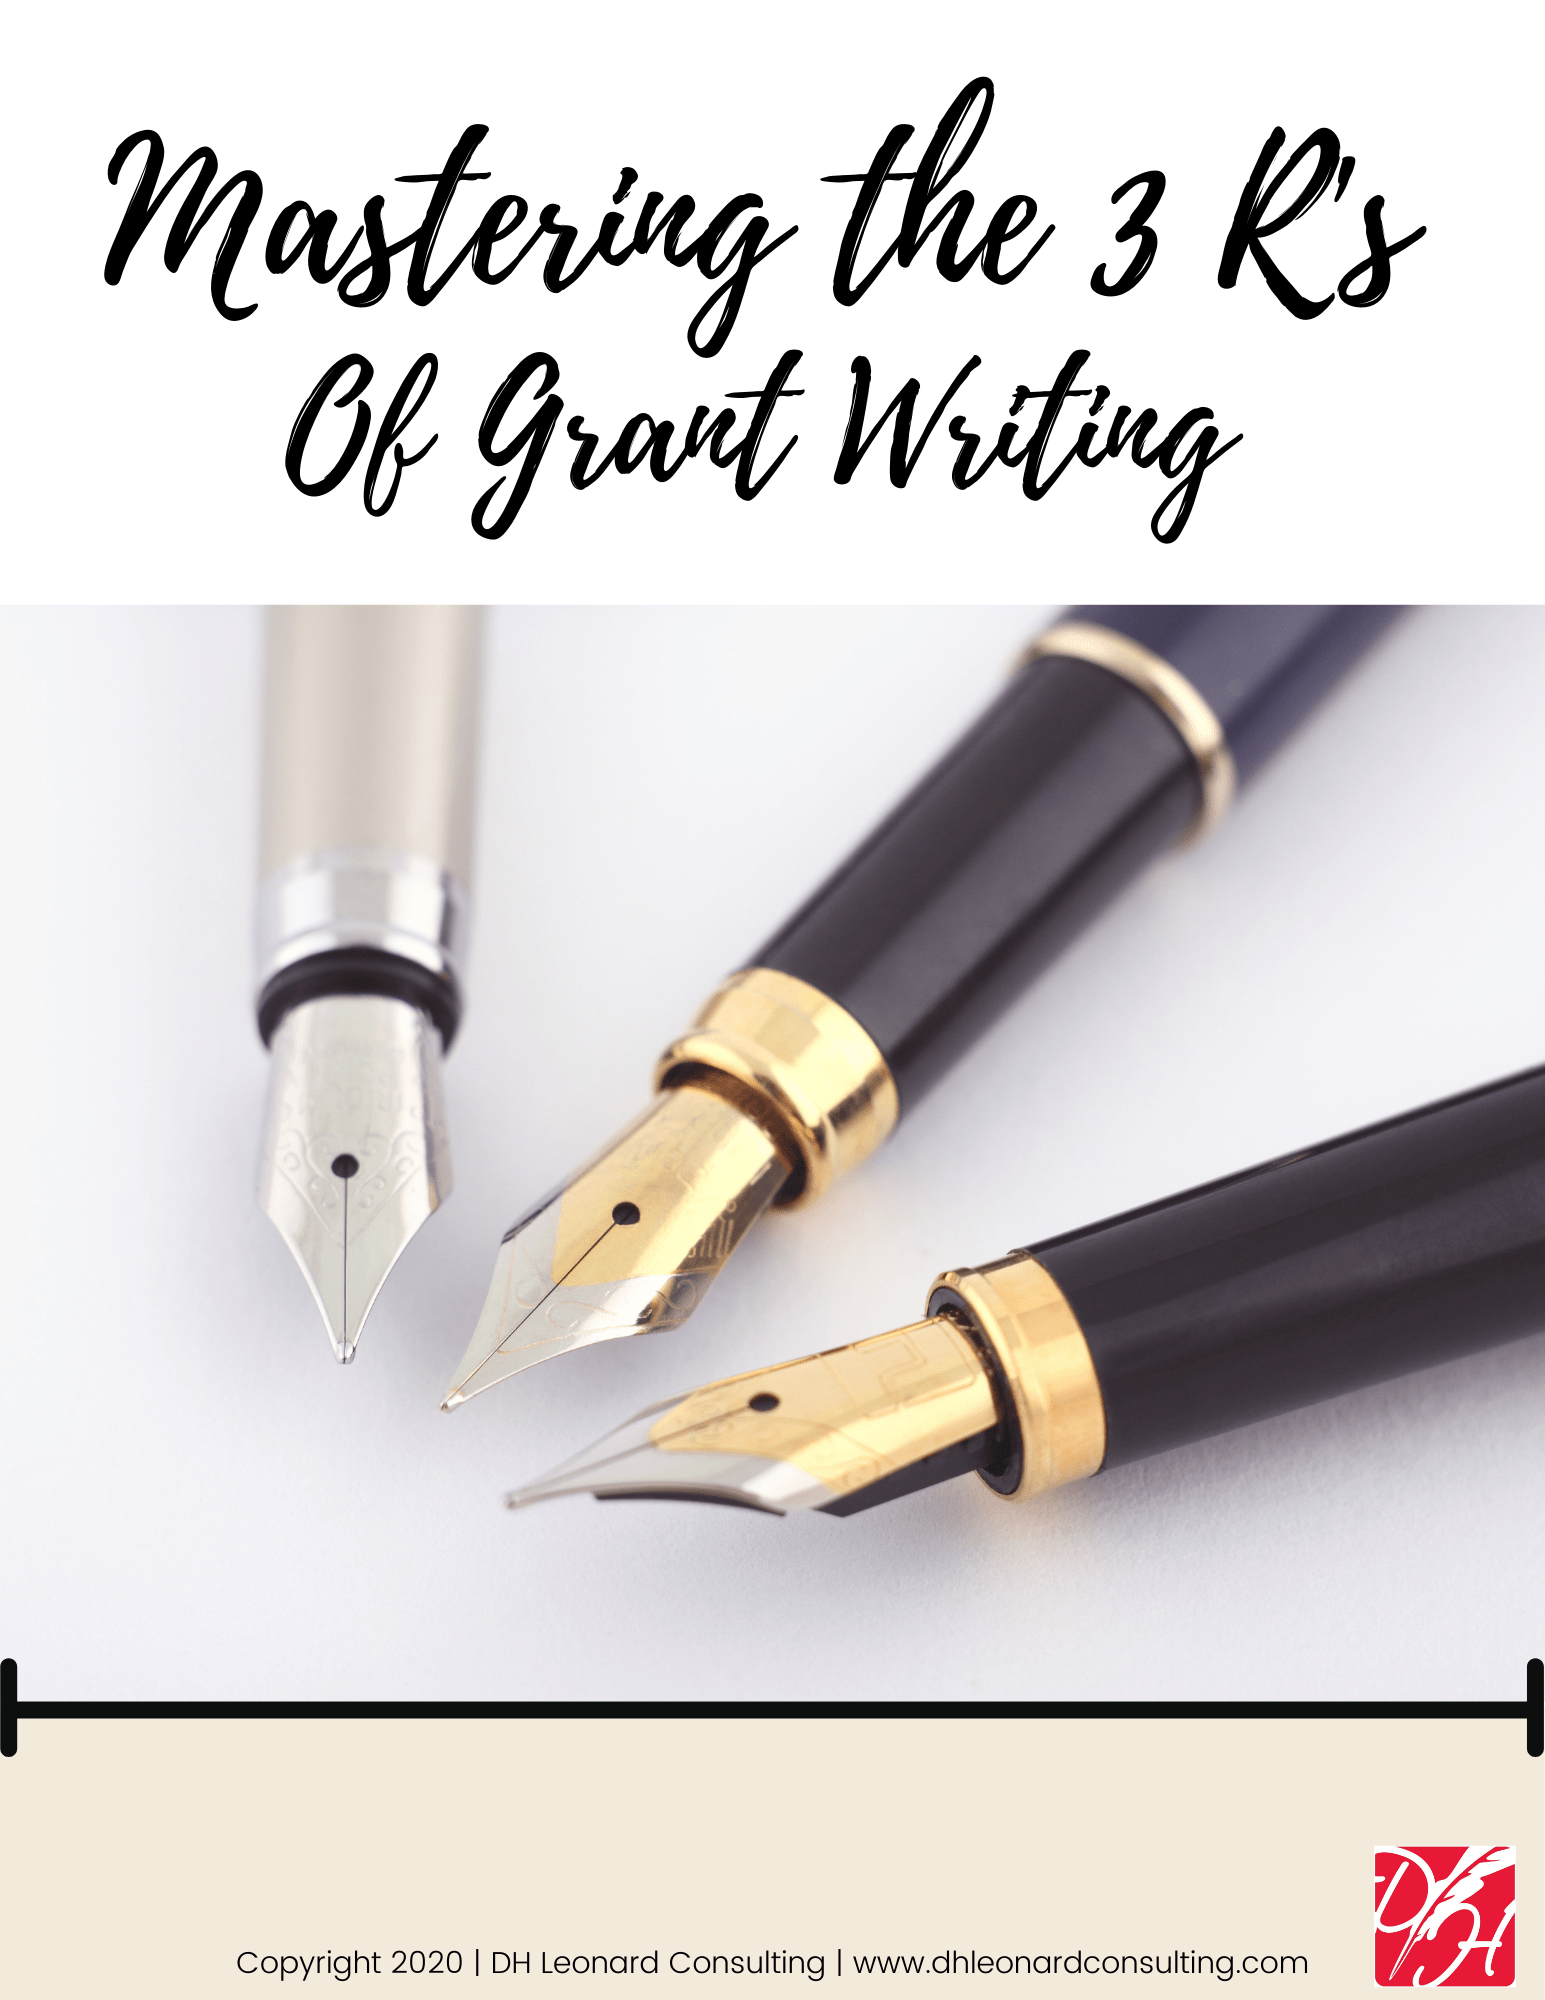 Mastering the 3 R's Cover